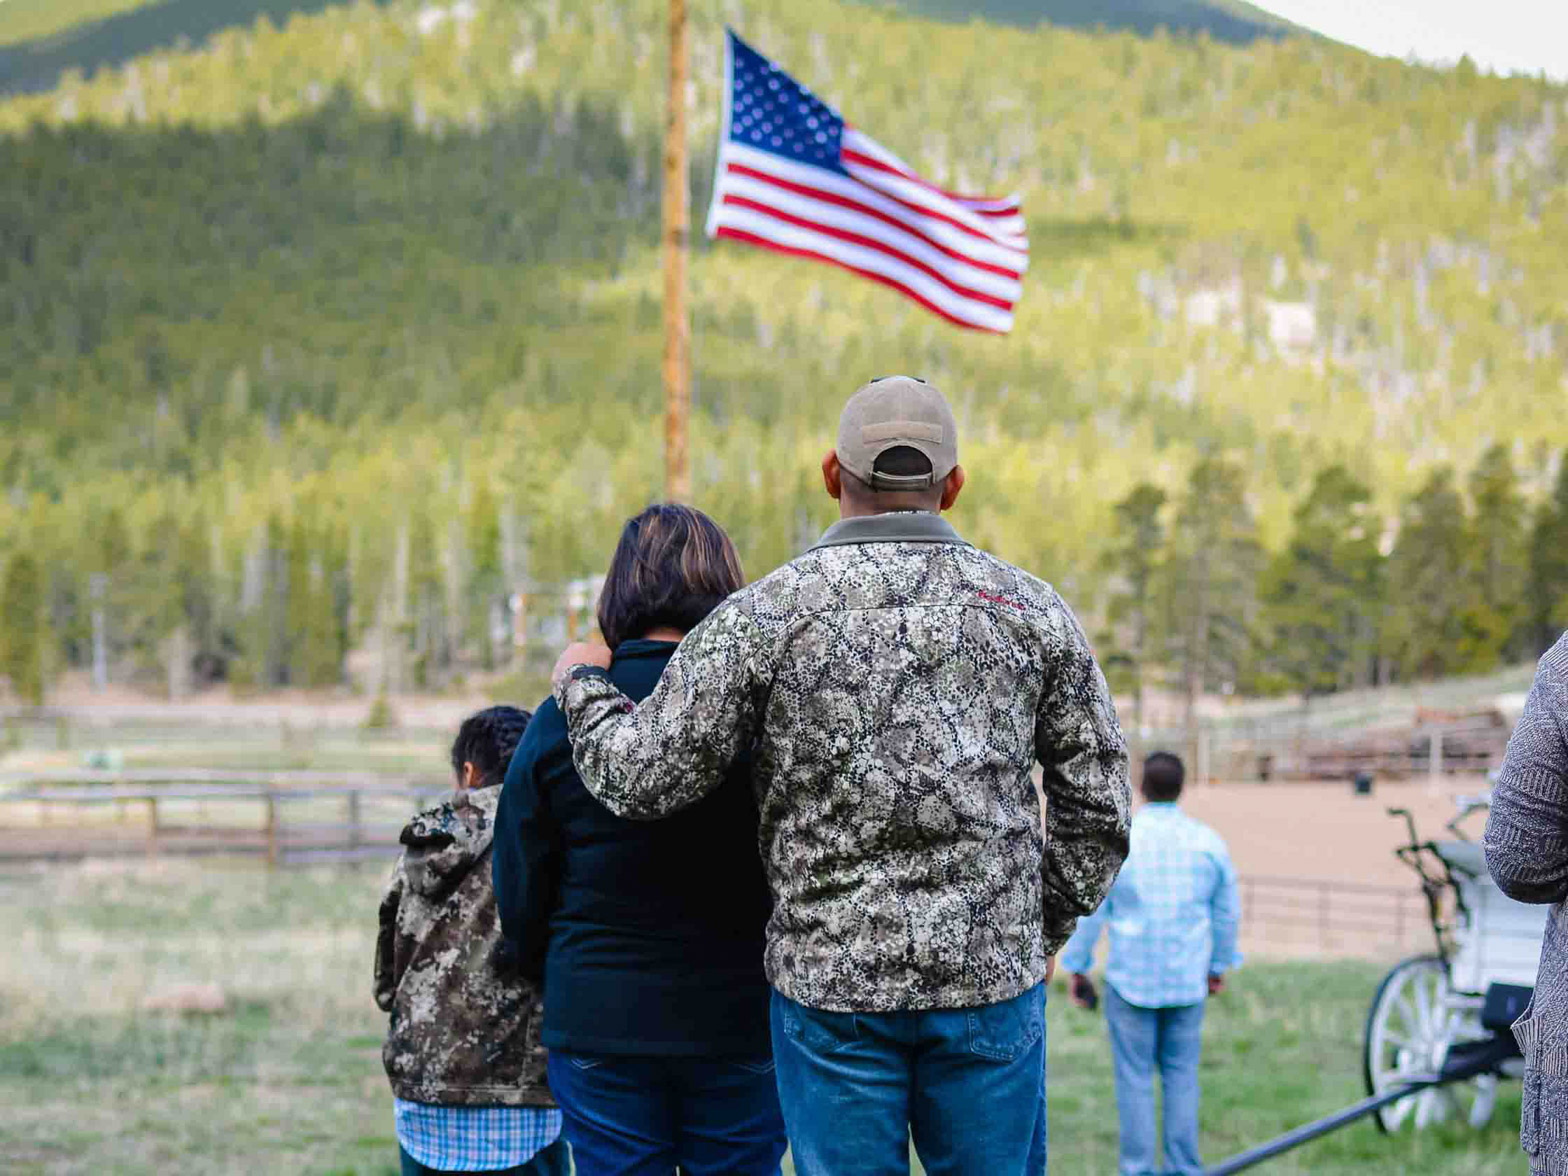 Family starring at the American flag.